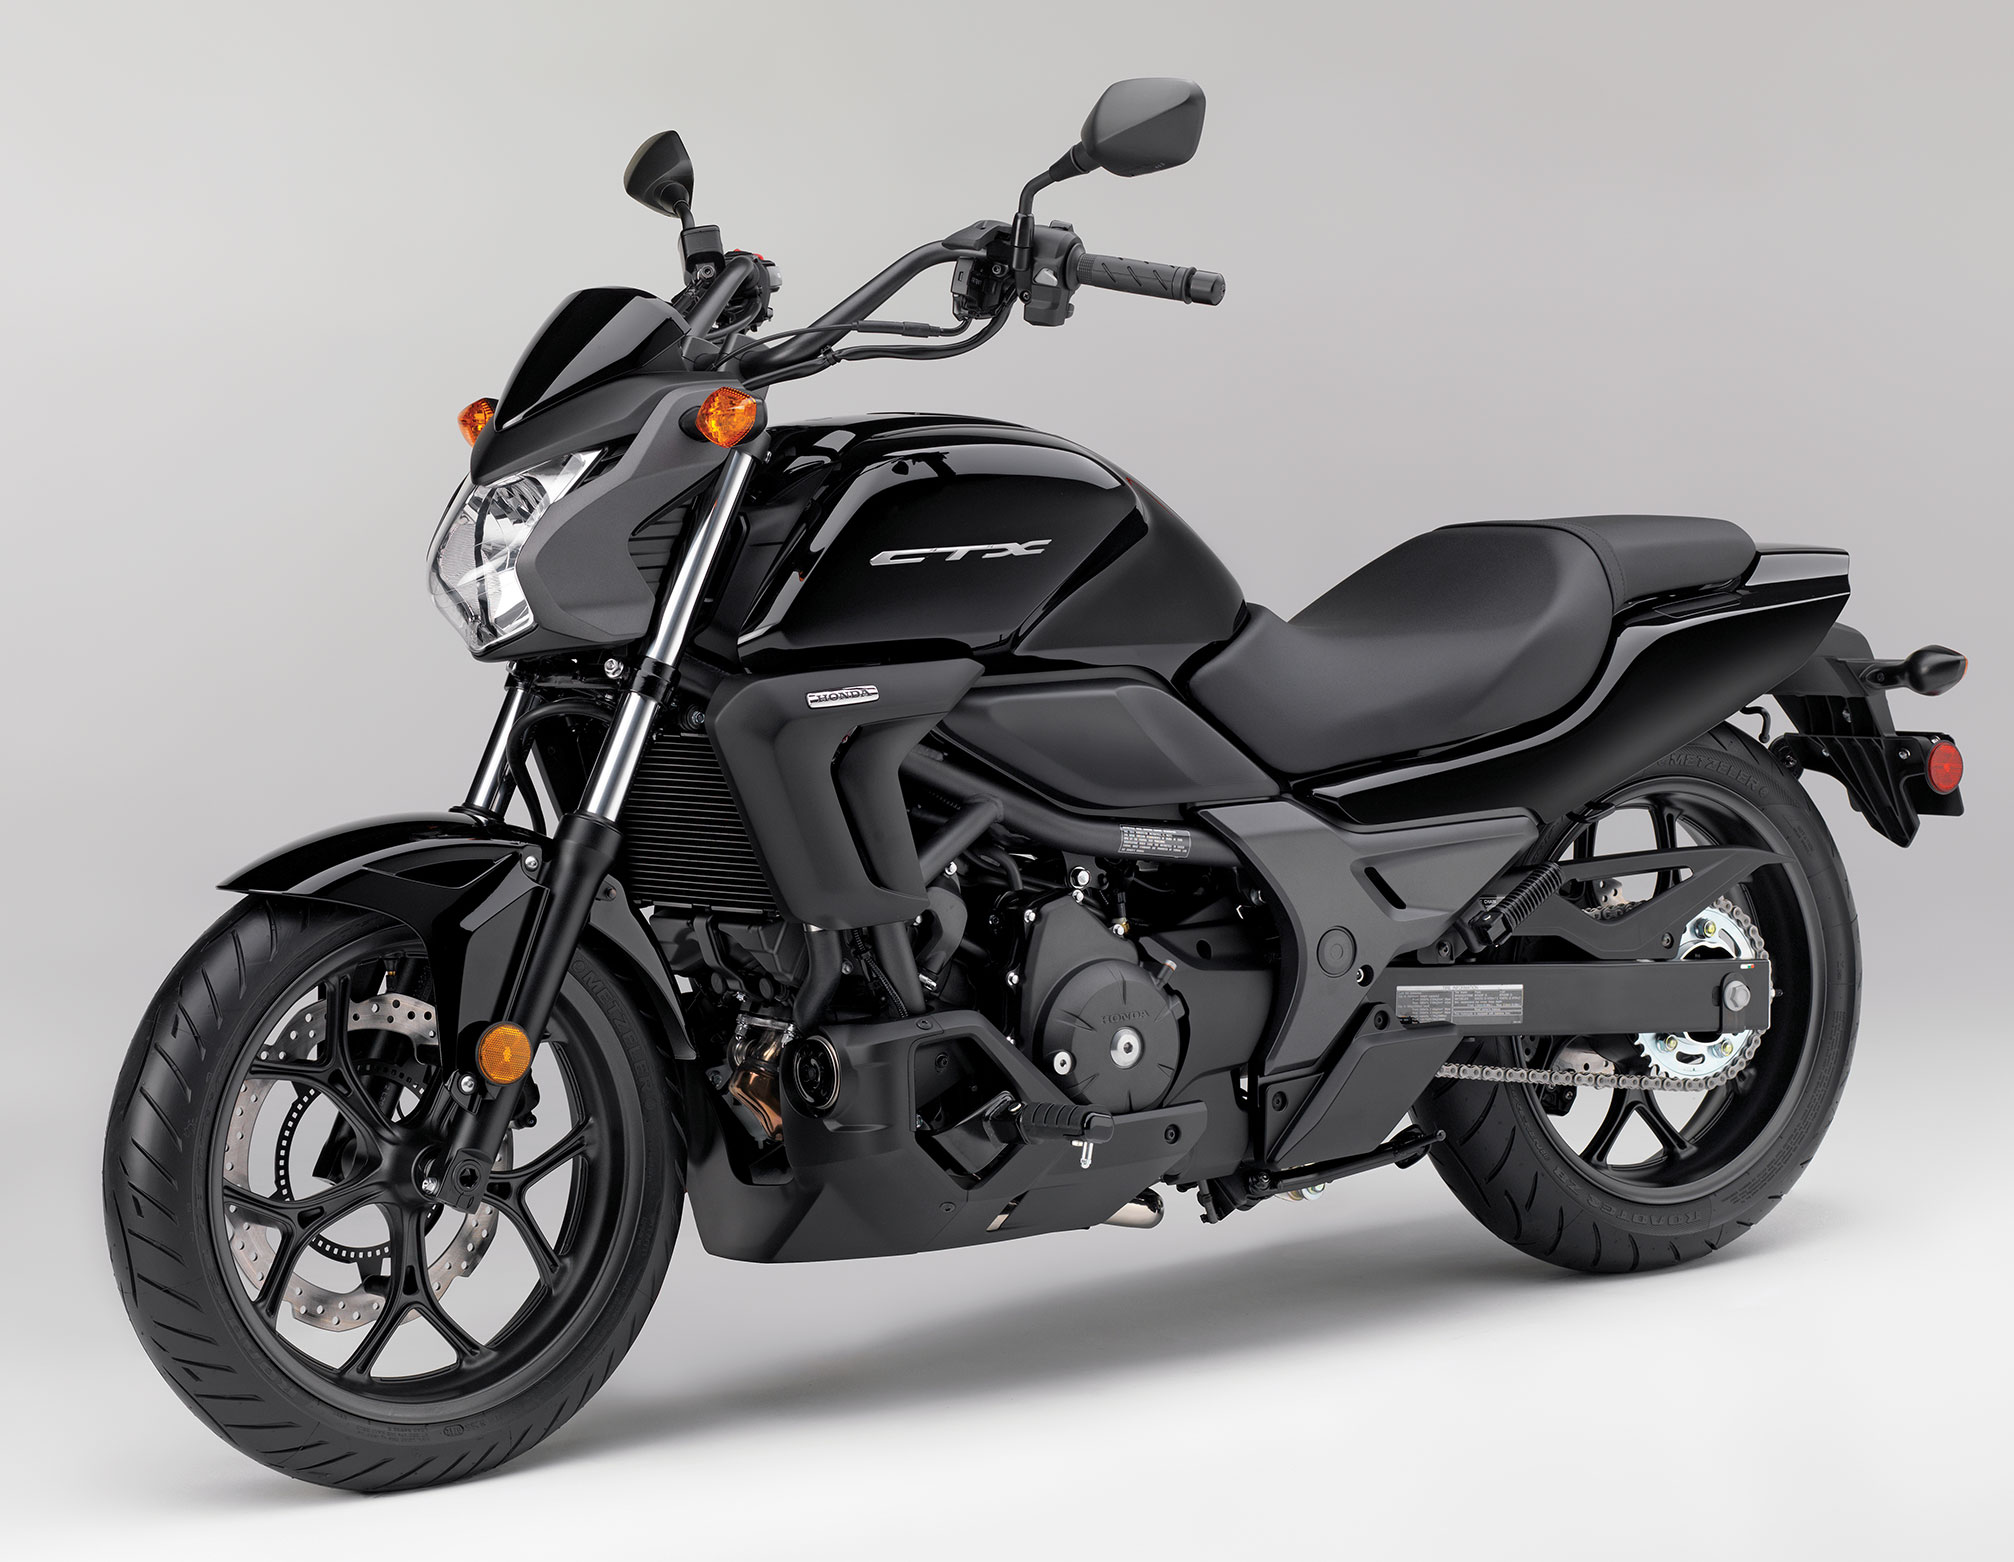 2014 honda ctx700nd with dct and abs review